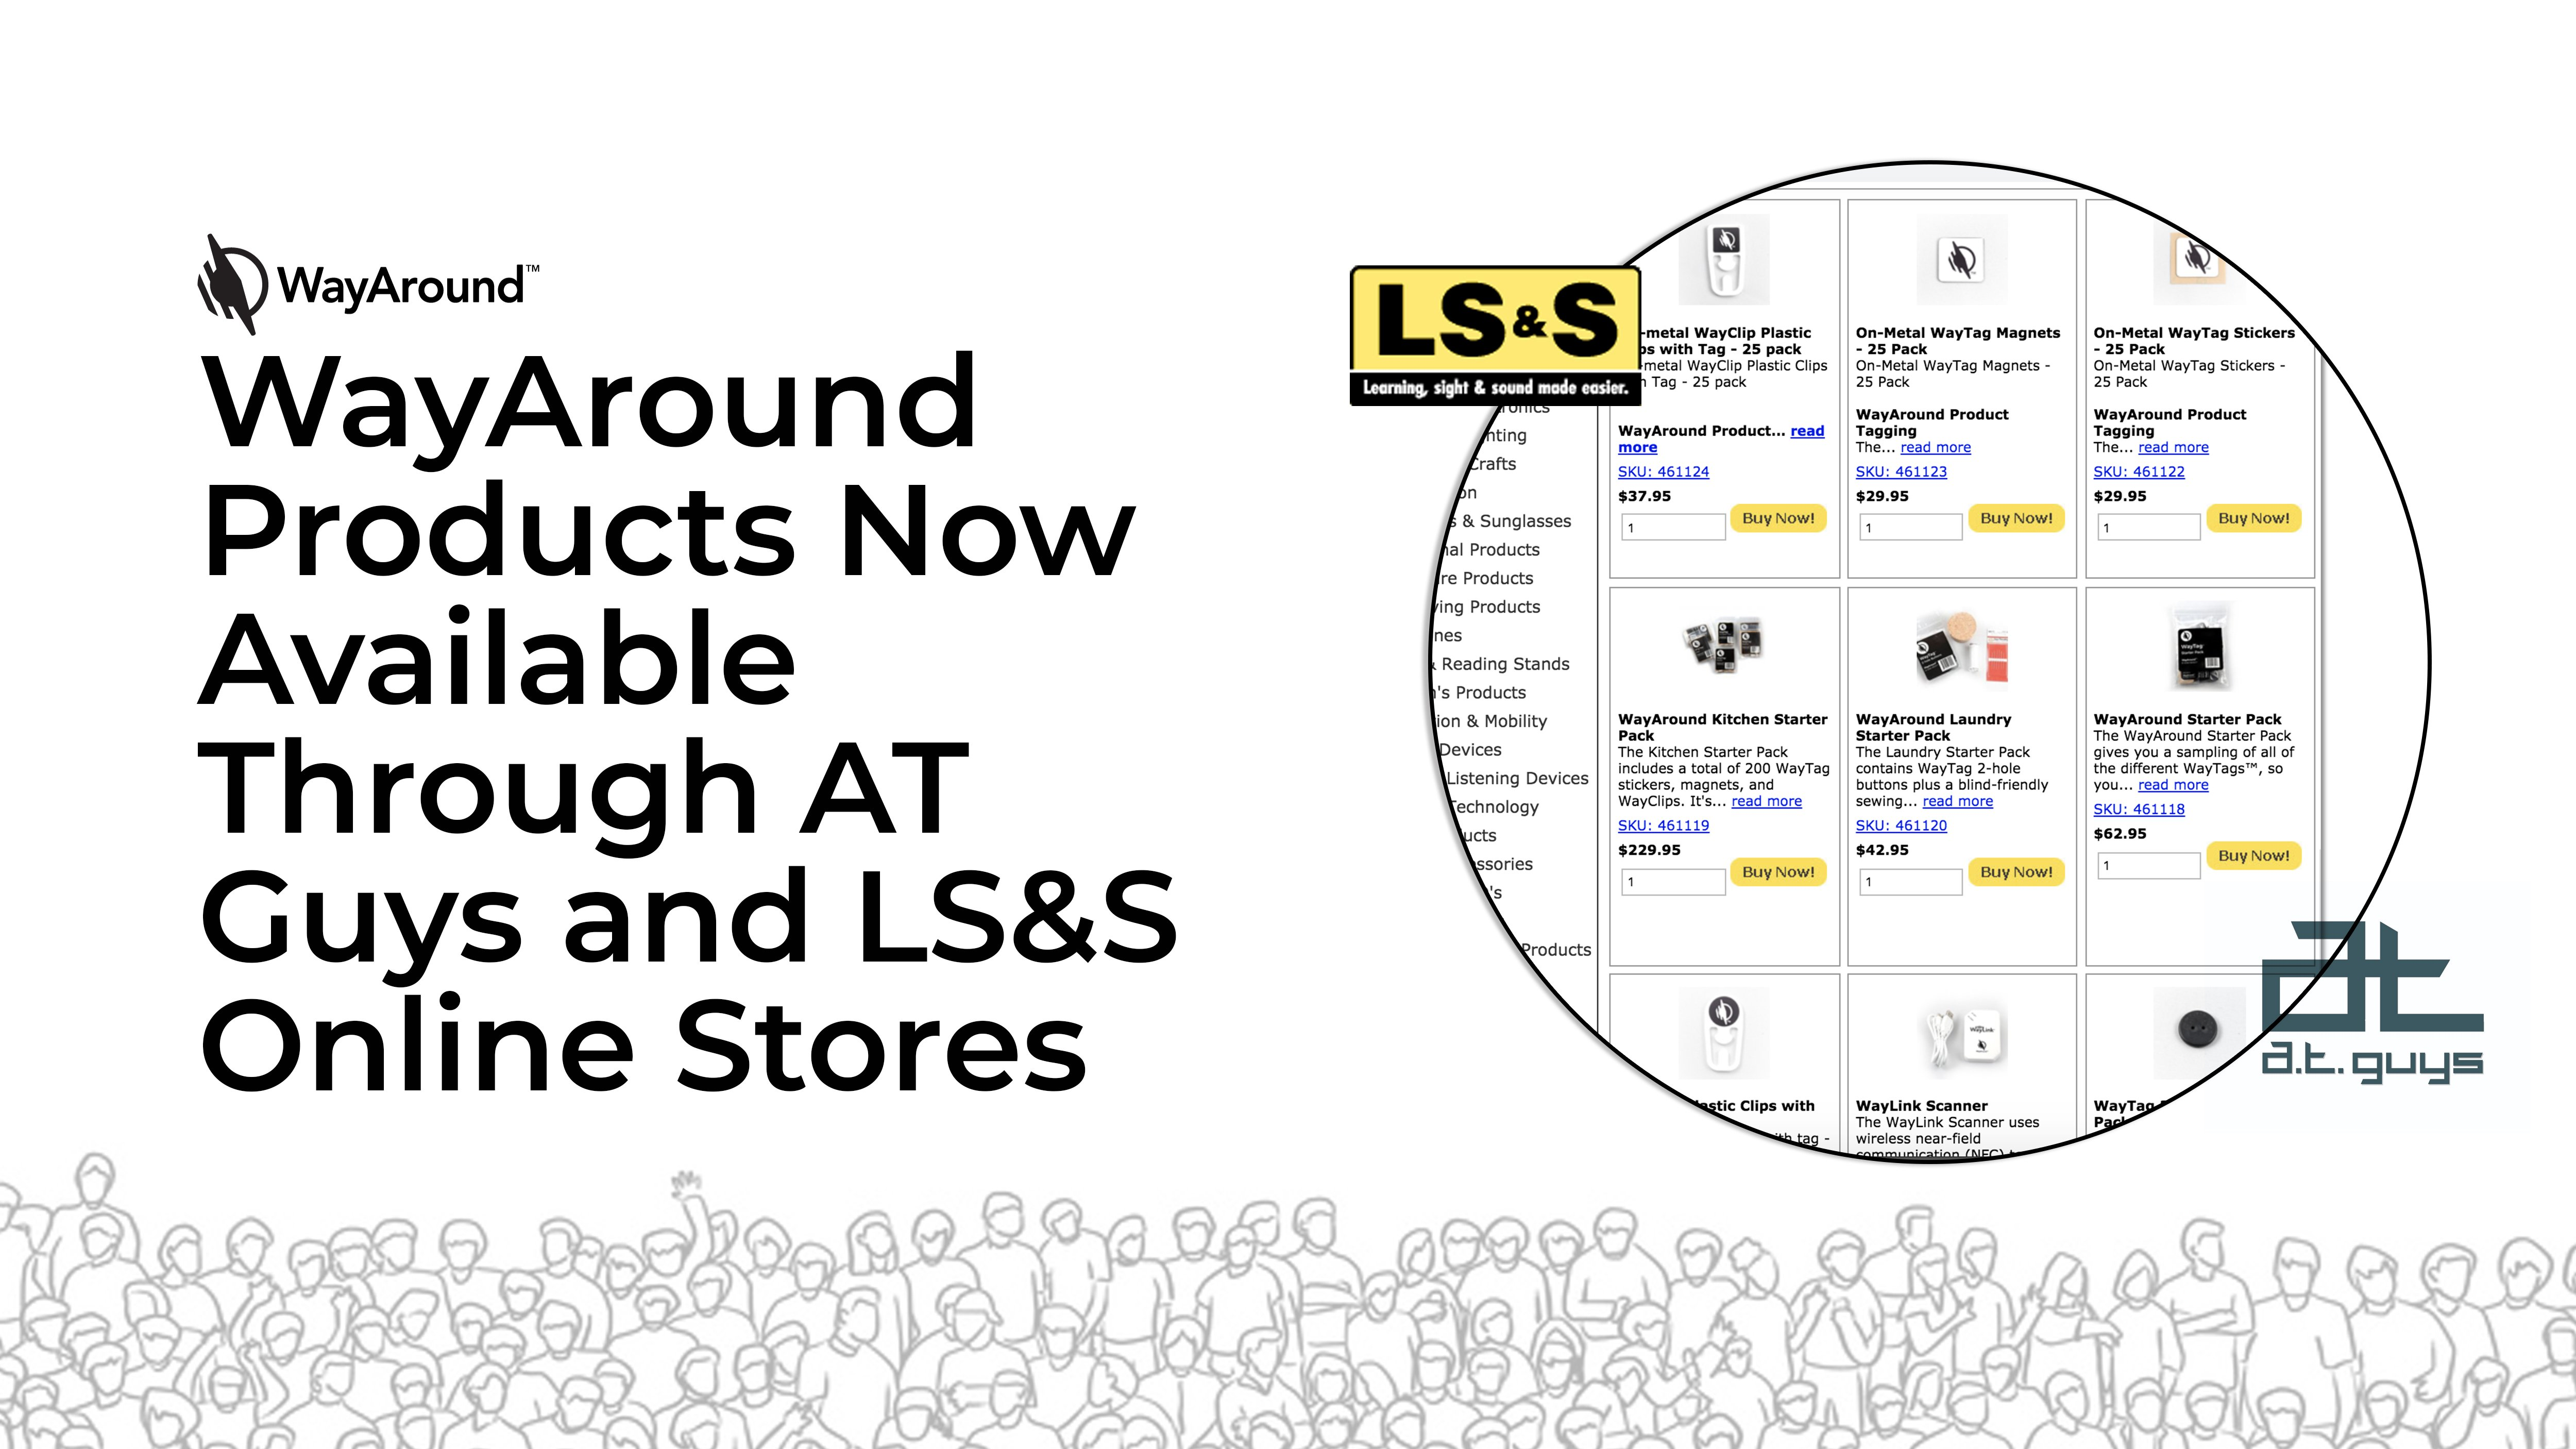 Photograph of an e-commerce store page with the LS&S and A.T. Guys logos. Text reads: WayAround Products Now Available Through A.T. Guys and LS&S Online Stores